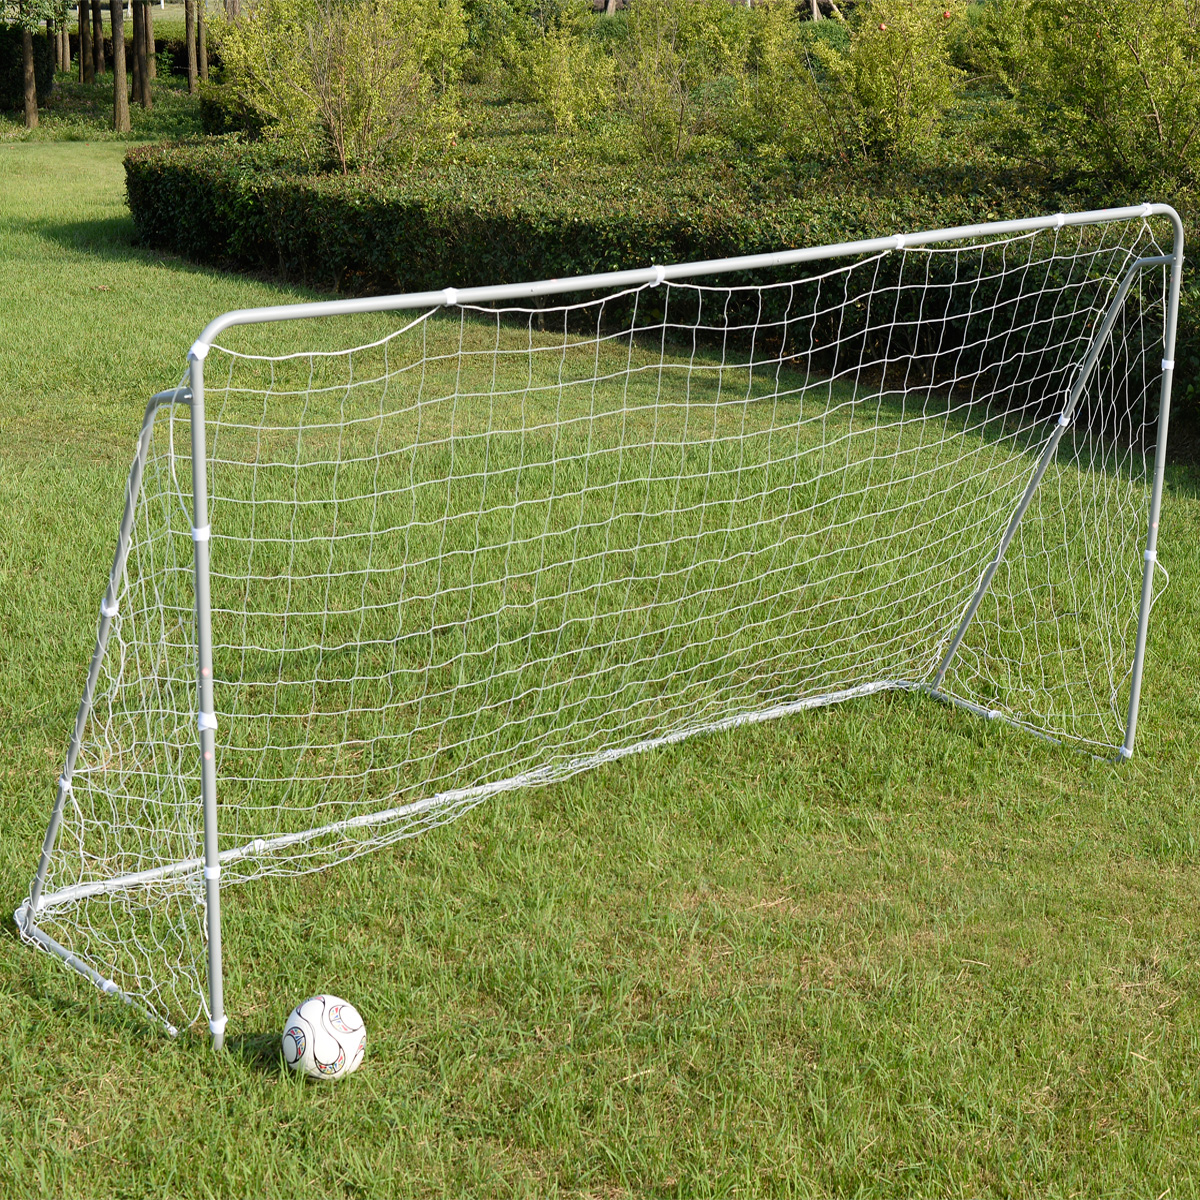 Costway Soccer Goal 12' X 6' Football W net Straps, Anchor Ball Training Sets by Costway